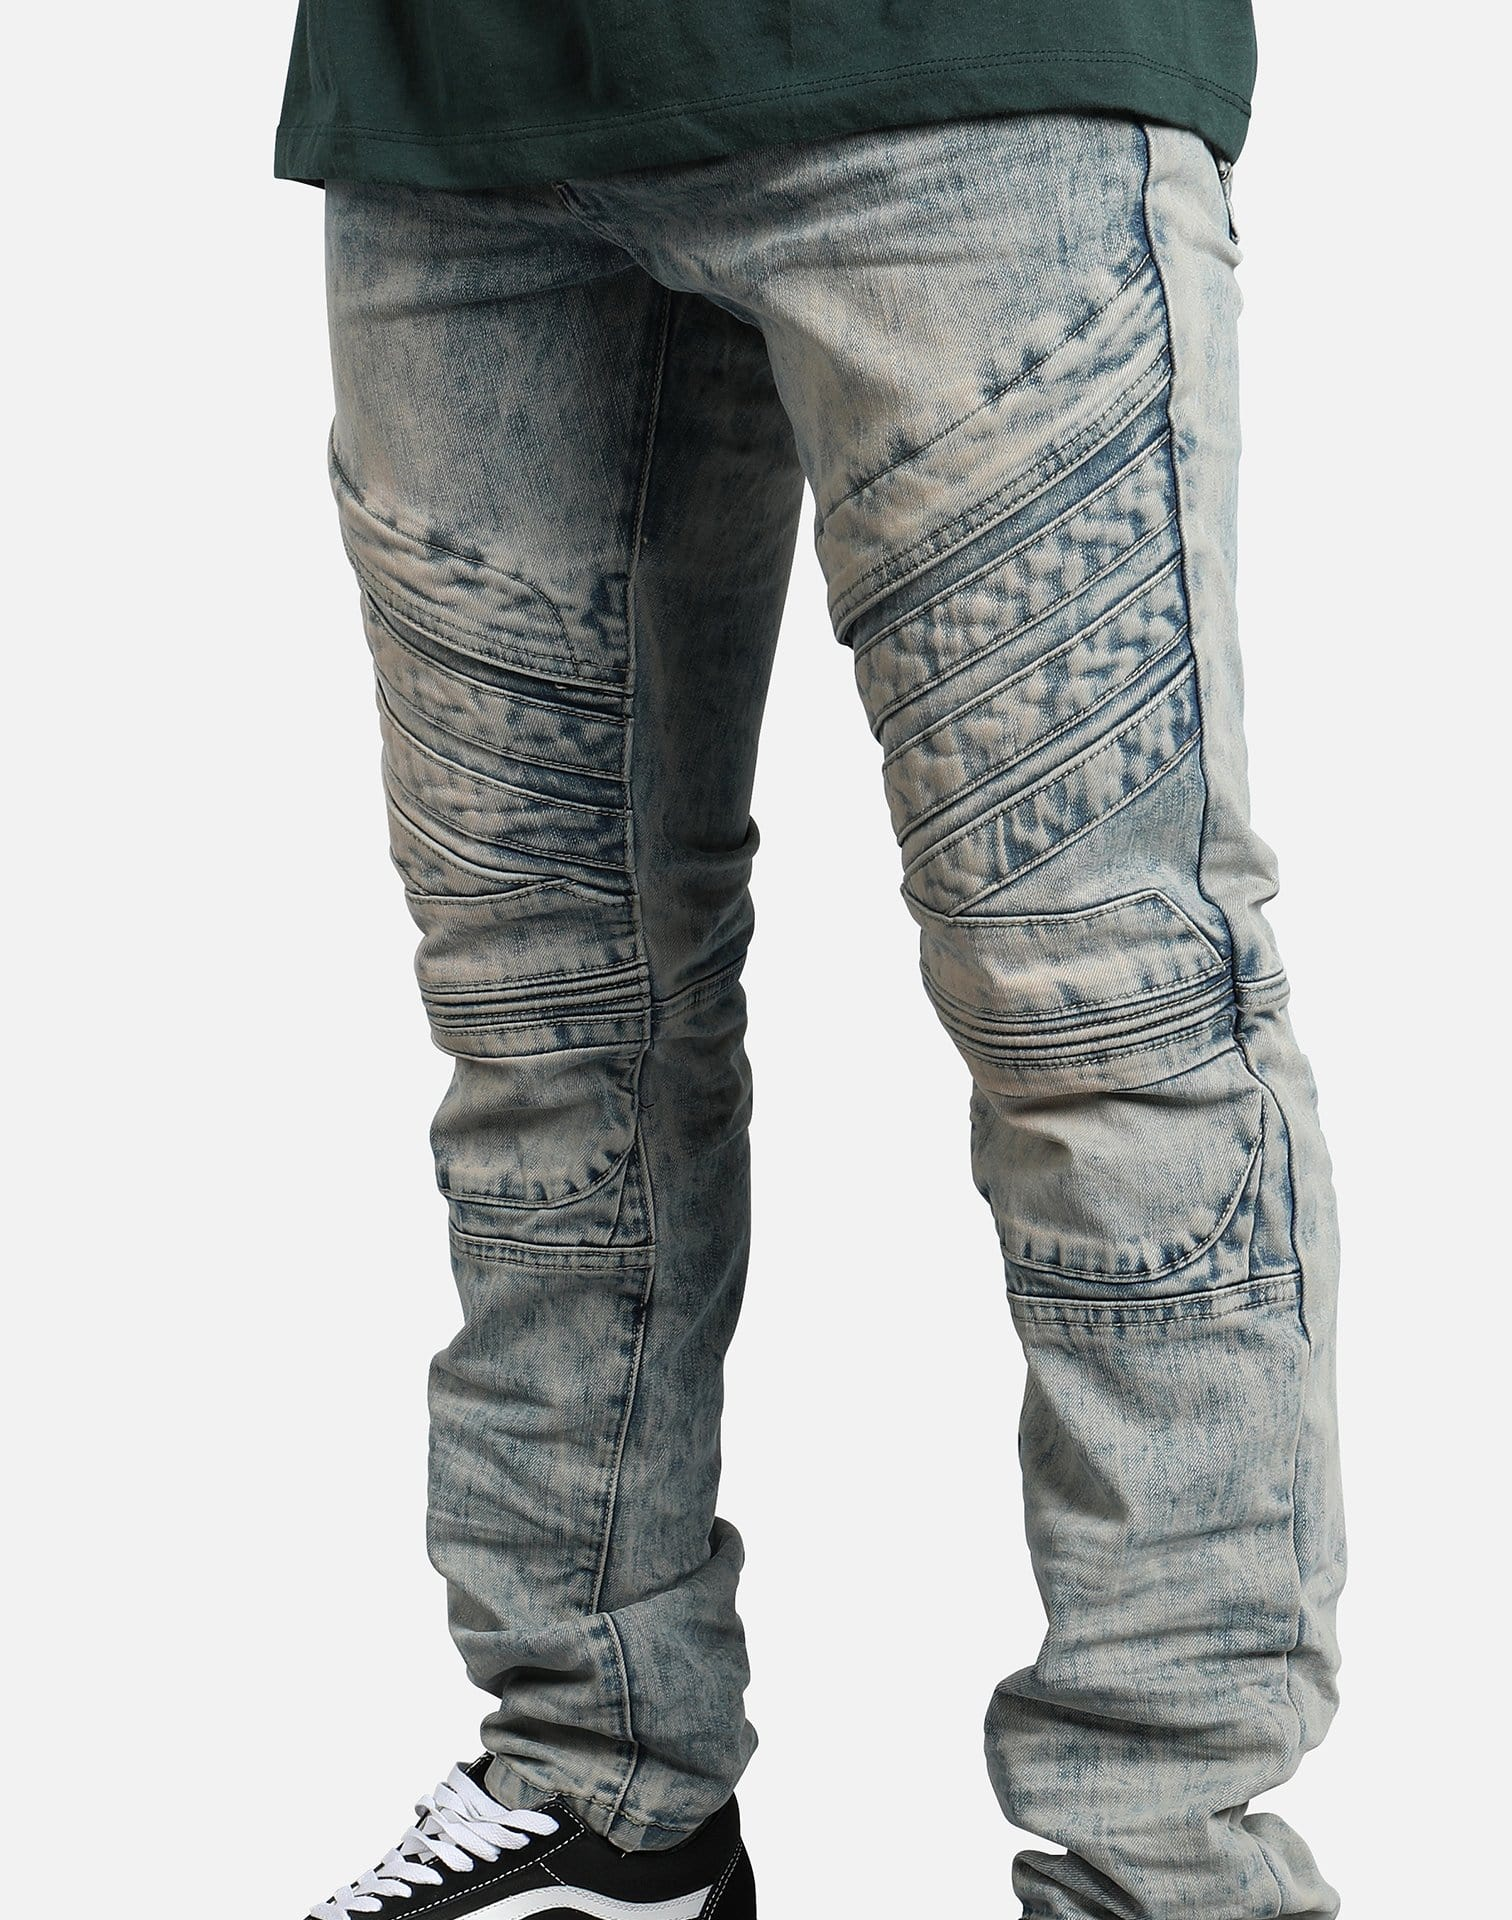 Smoke Rise Fashion Denim Jeans